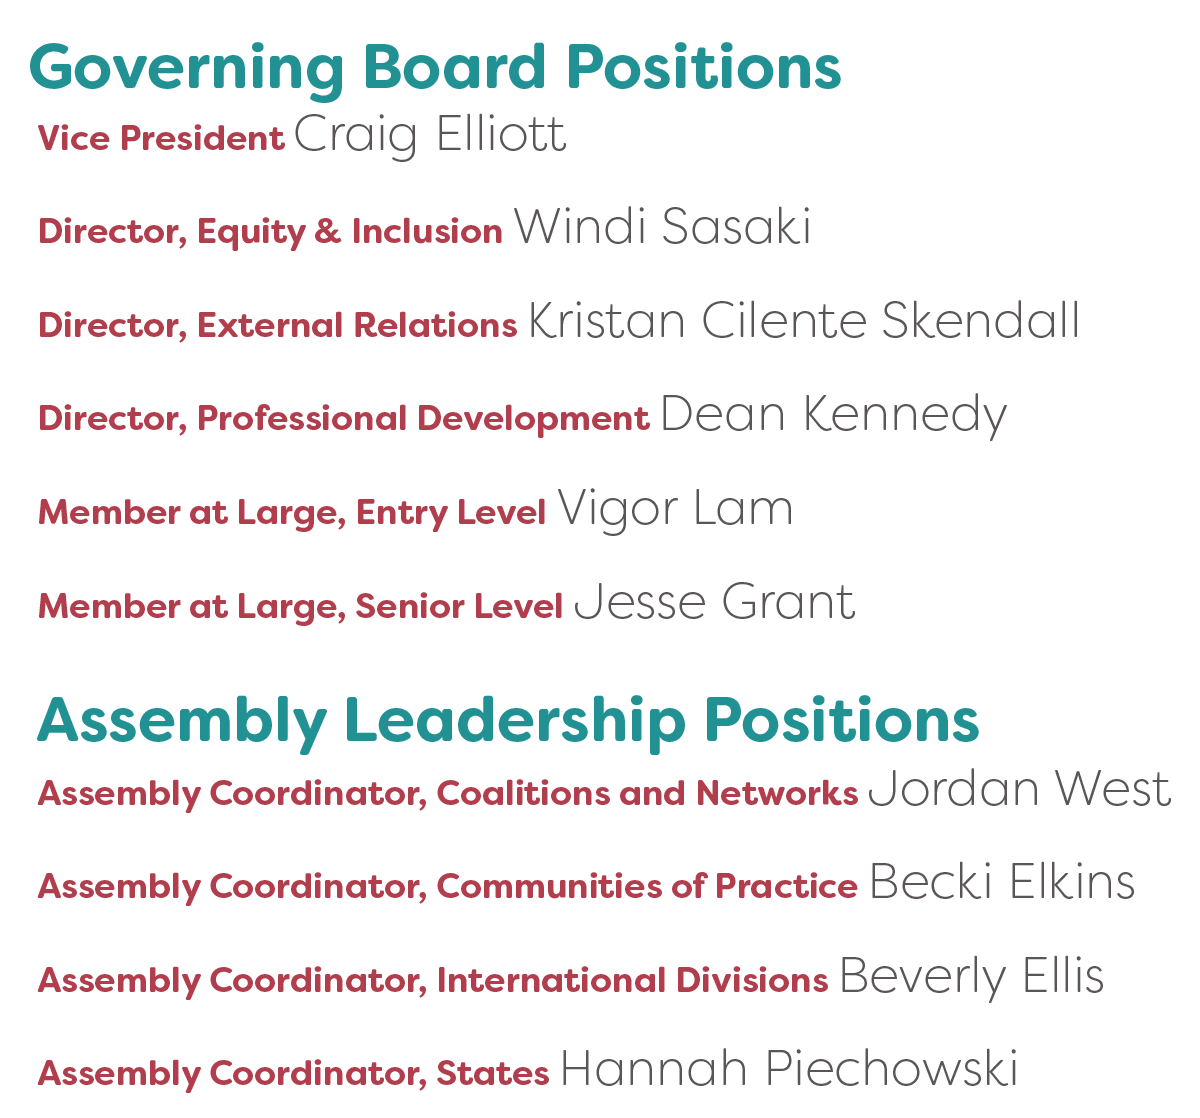 Governing Board Positions are as follows: Vice President: Craig Elliott, Director of Equity & Inclusion: Windi Sasaki, Director of External Relations: Kristan Cilente Skendall, Director of Professional Development: Dean Kennedy, Member at Large, Entry Level: Vigor Lam, Member at Large, Senior Level: Jesse Grant. Assembly Leadership Positions are as follows: Assembly Coordinator, Coalitions and Networks: Jordan West, Assembly Coordinator, Communities of Practice: Becki Elkins, Assembly Coordinator, International Divisions: Beverly Ellis, Assembly Coordinator, States: Hannah Piechowski